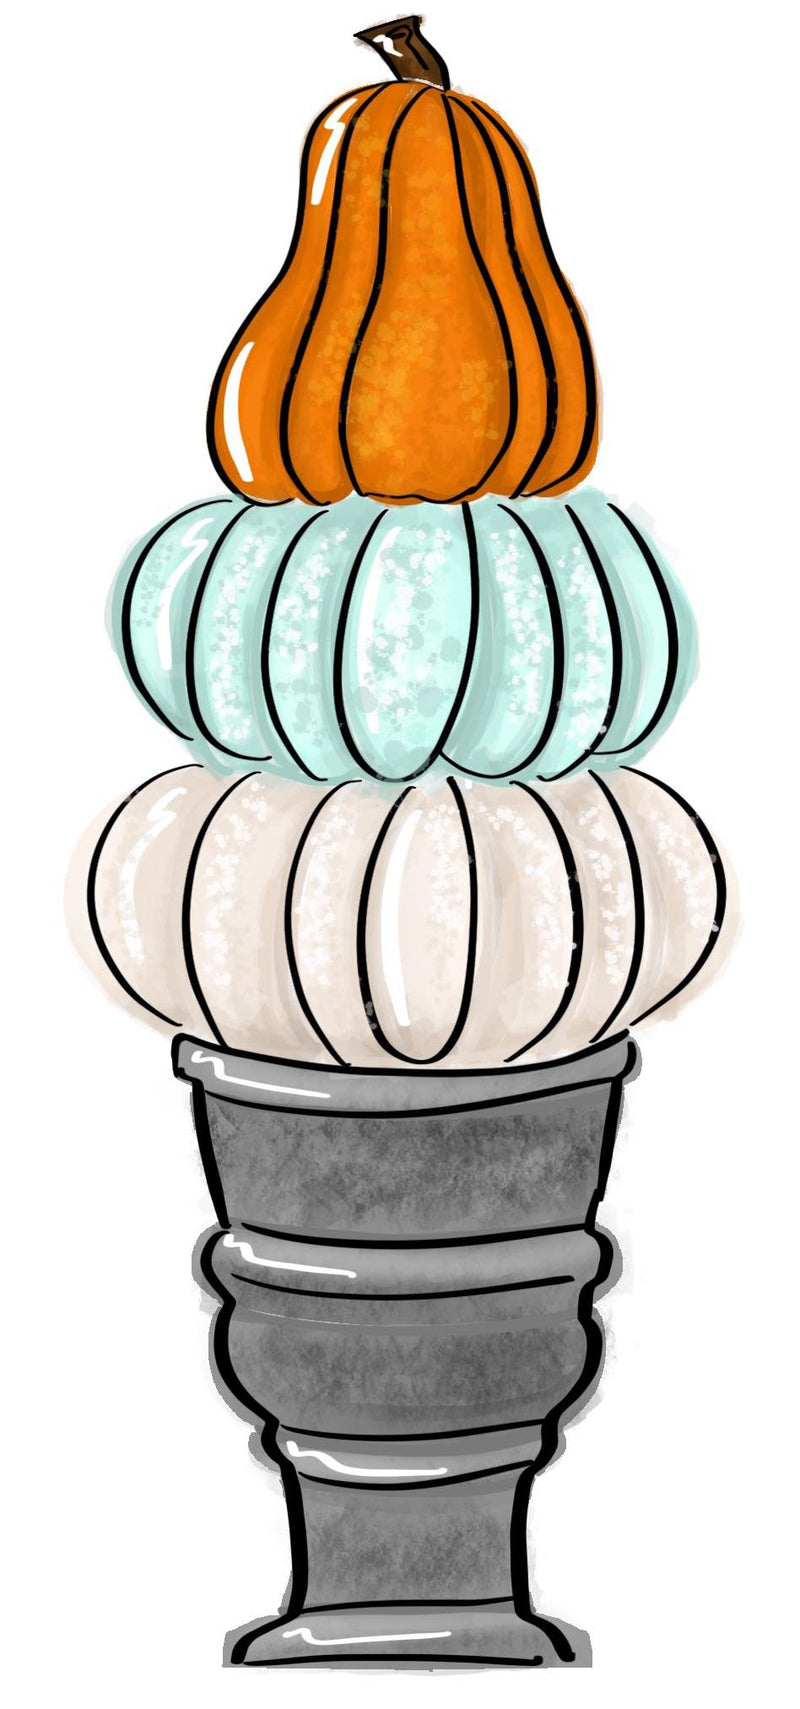 Pumpkin Topiary Template & Digital Cut File